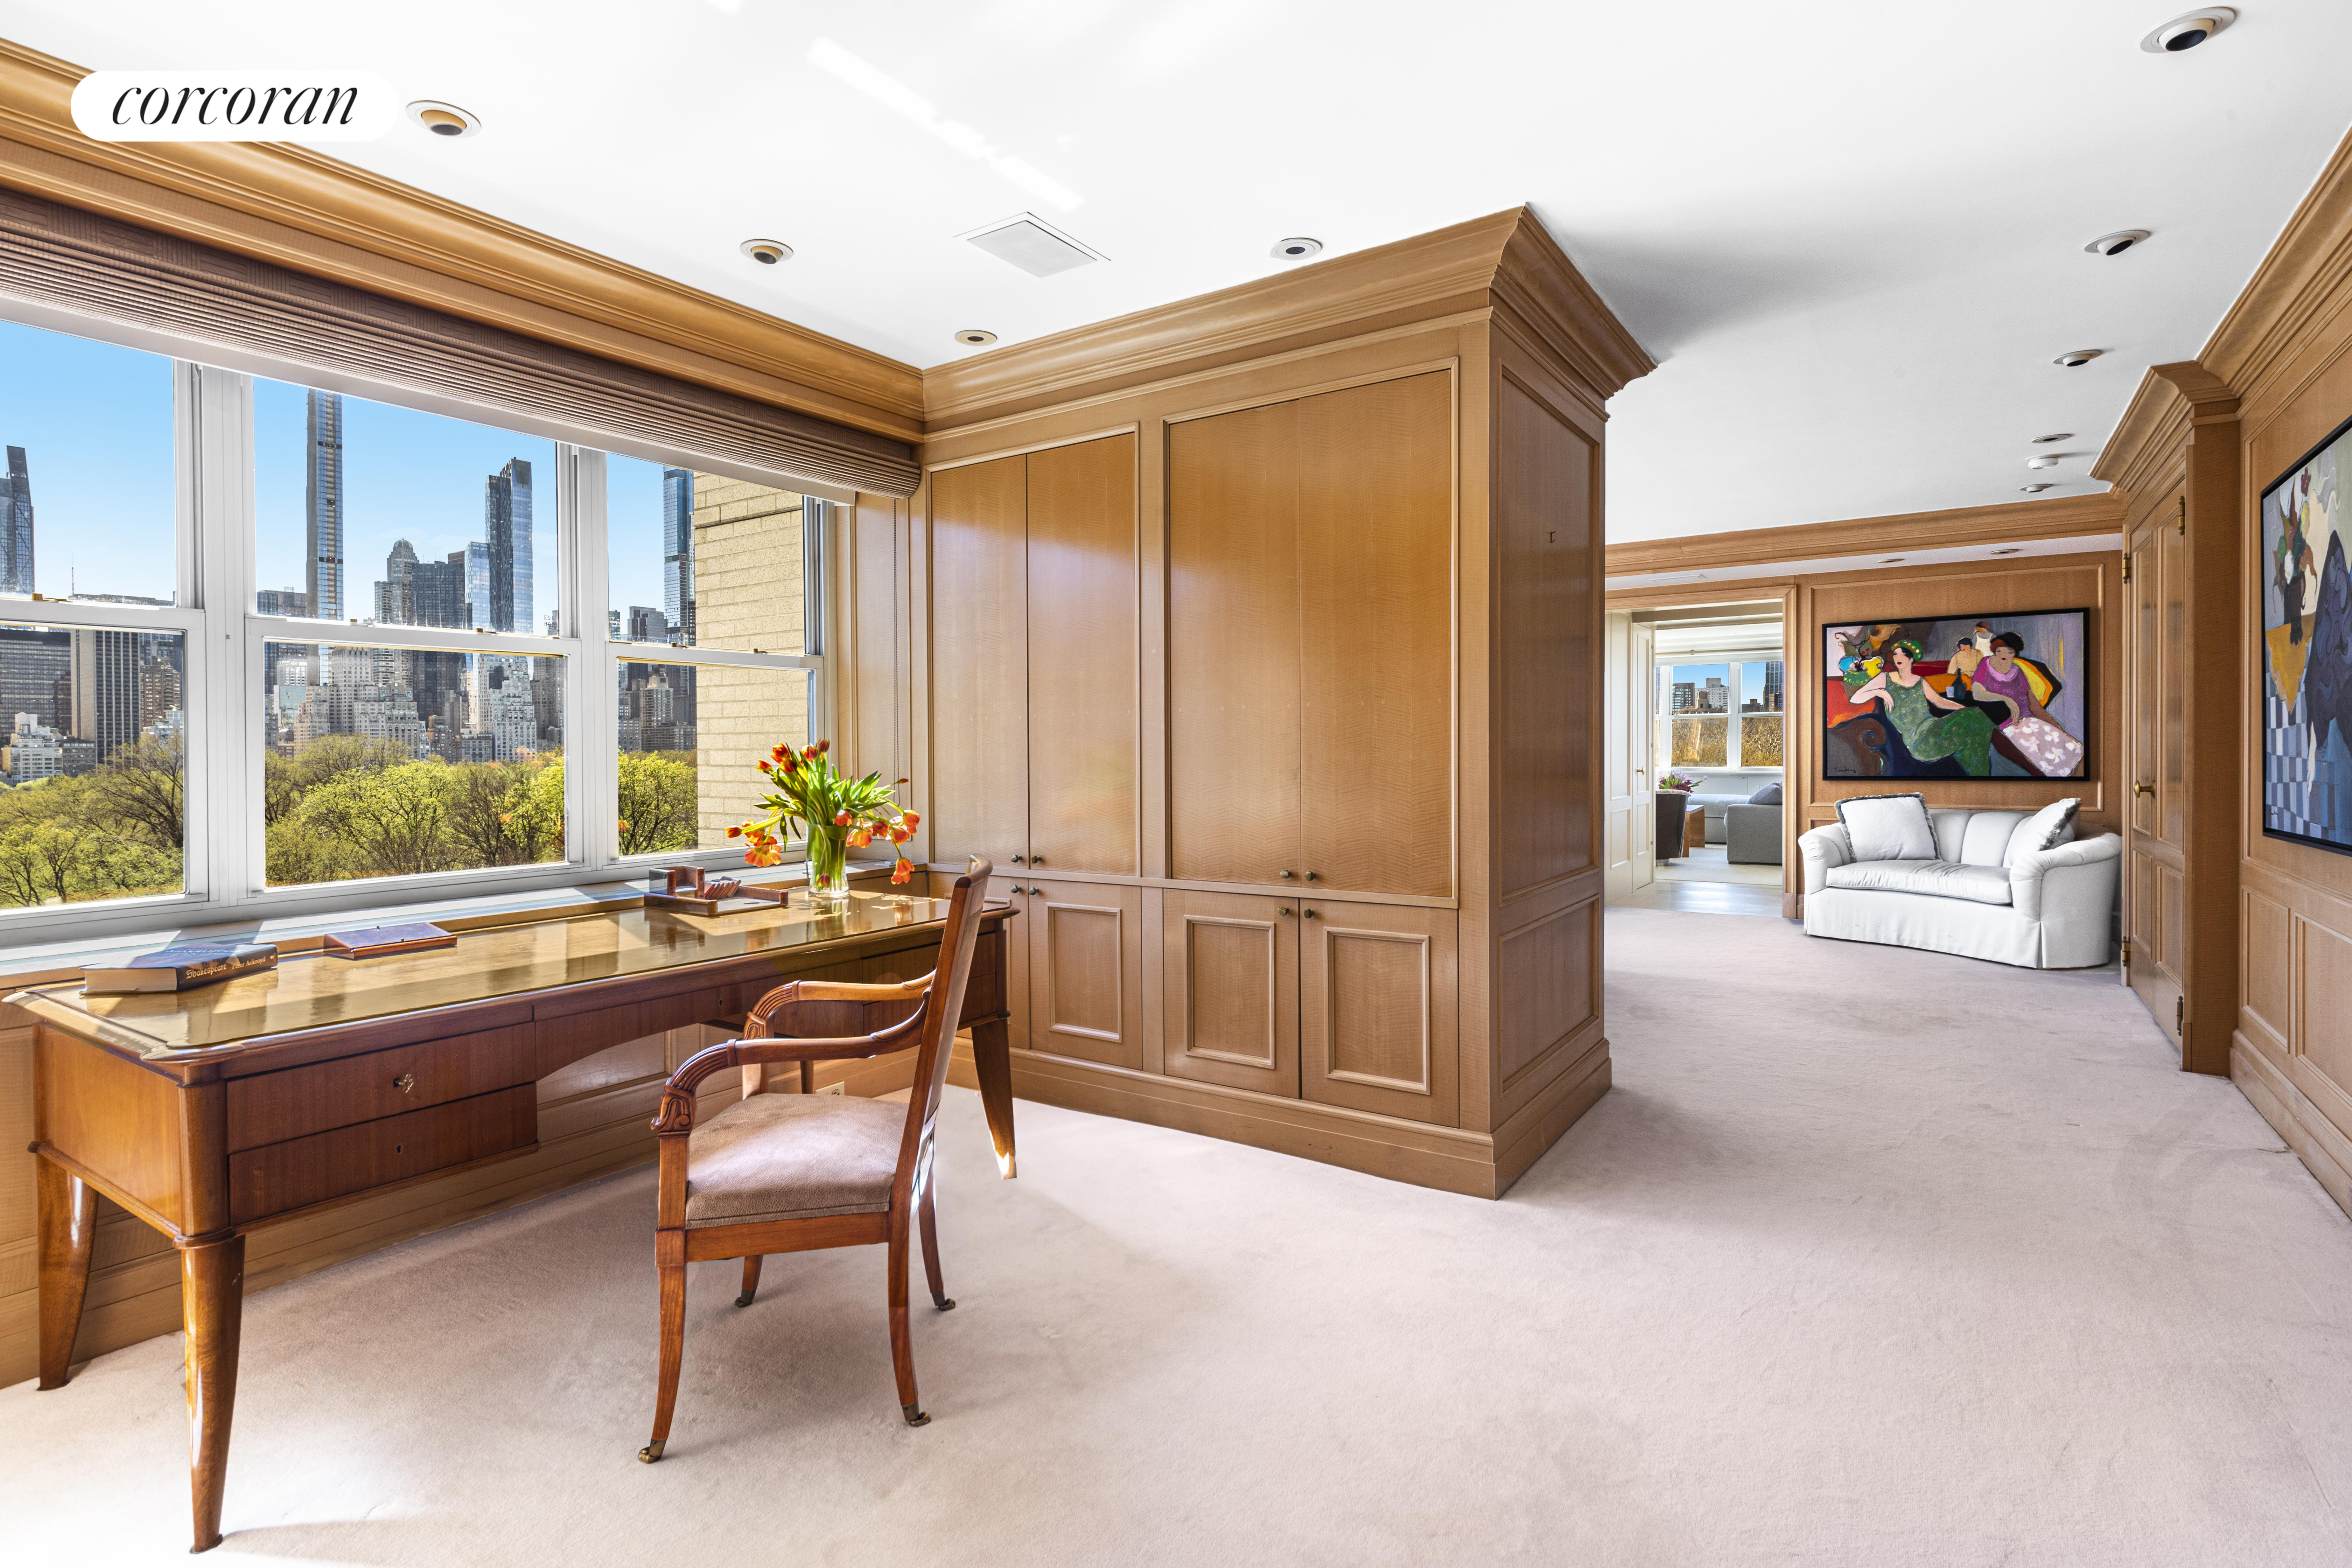 900 Fifth Avenue Upper East Side New York NY 10021